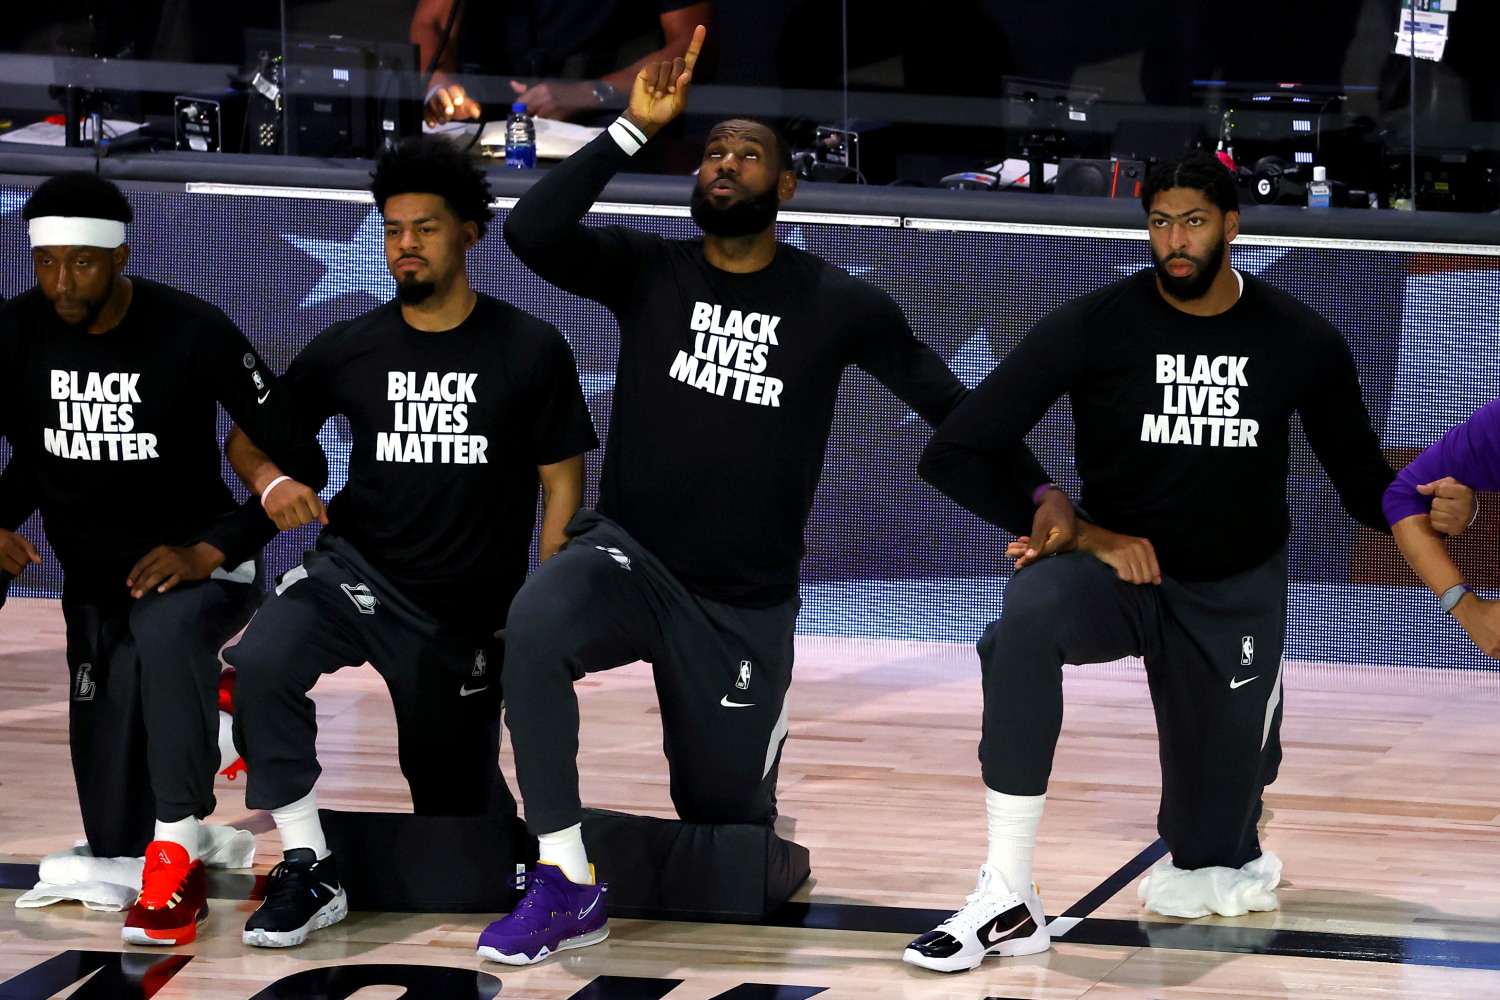 LeBron James and Donald Trump are on the opposite sides of the anthem protest issue. James, however, just made his feelings about Trump known.